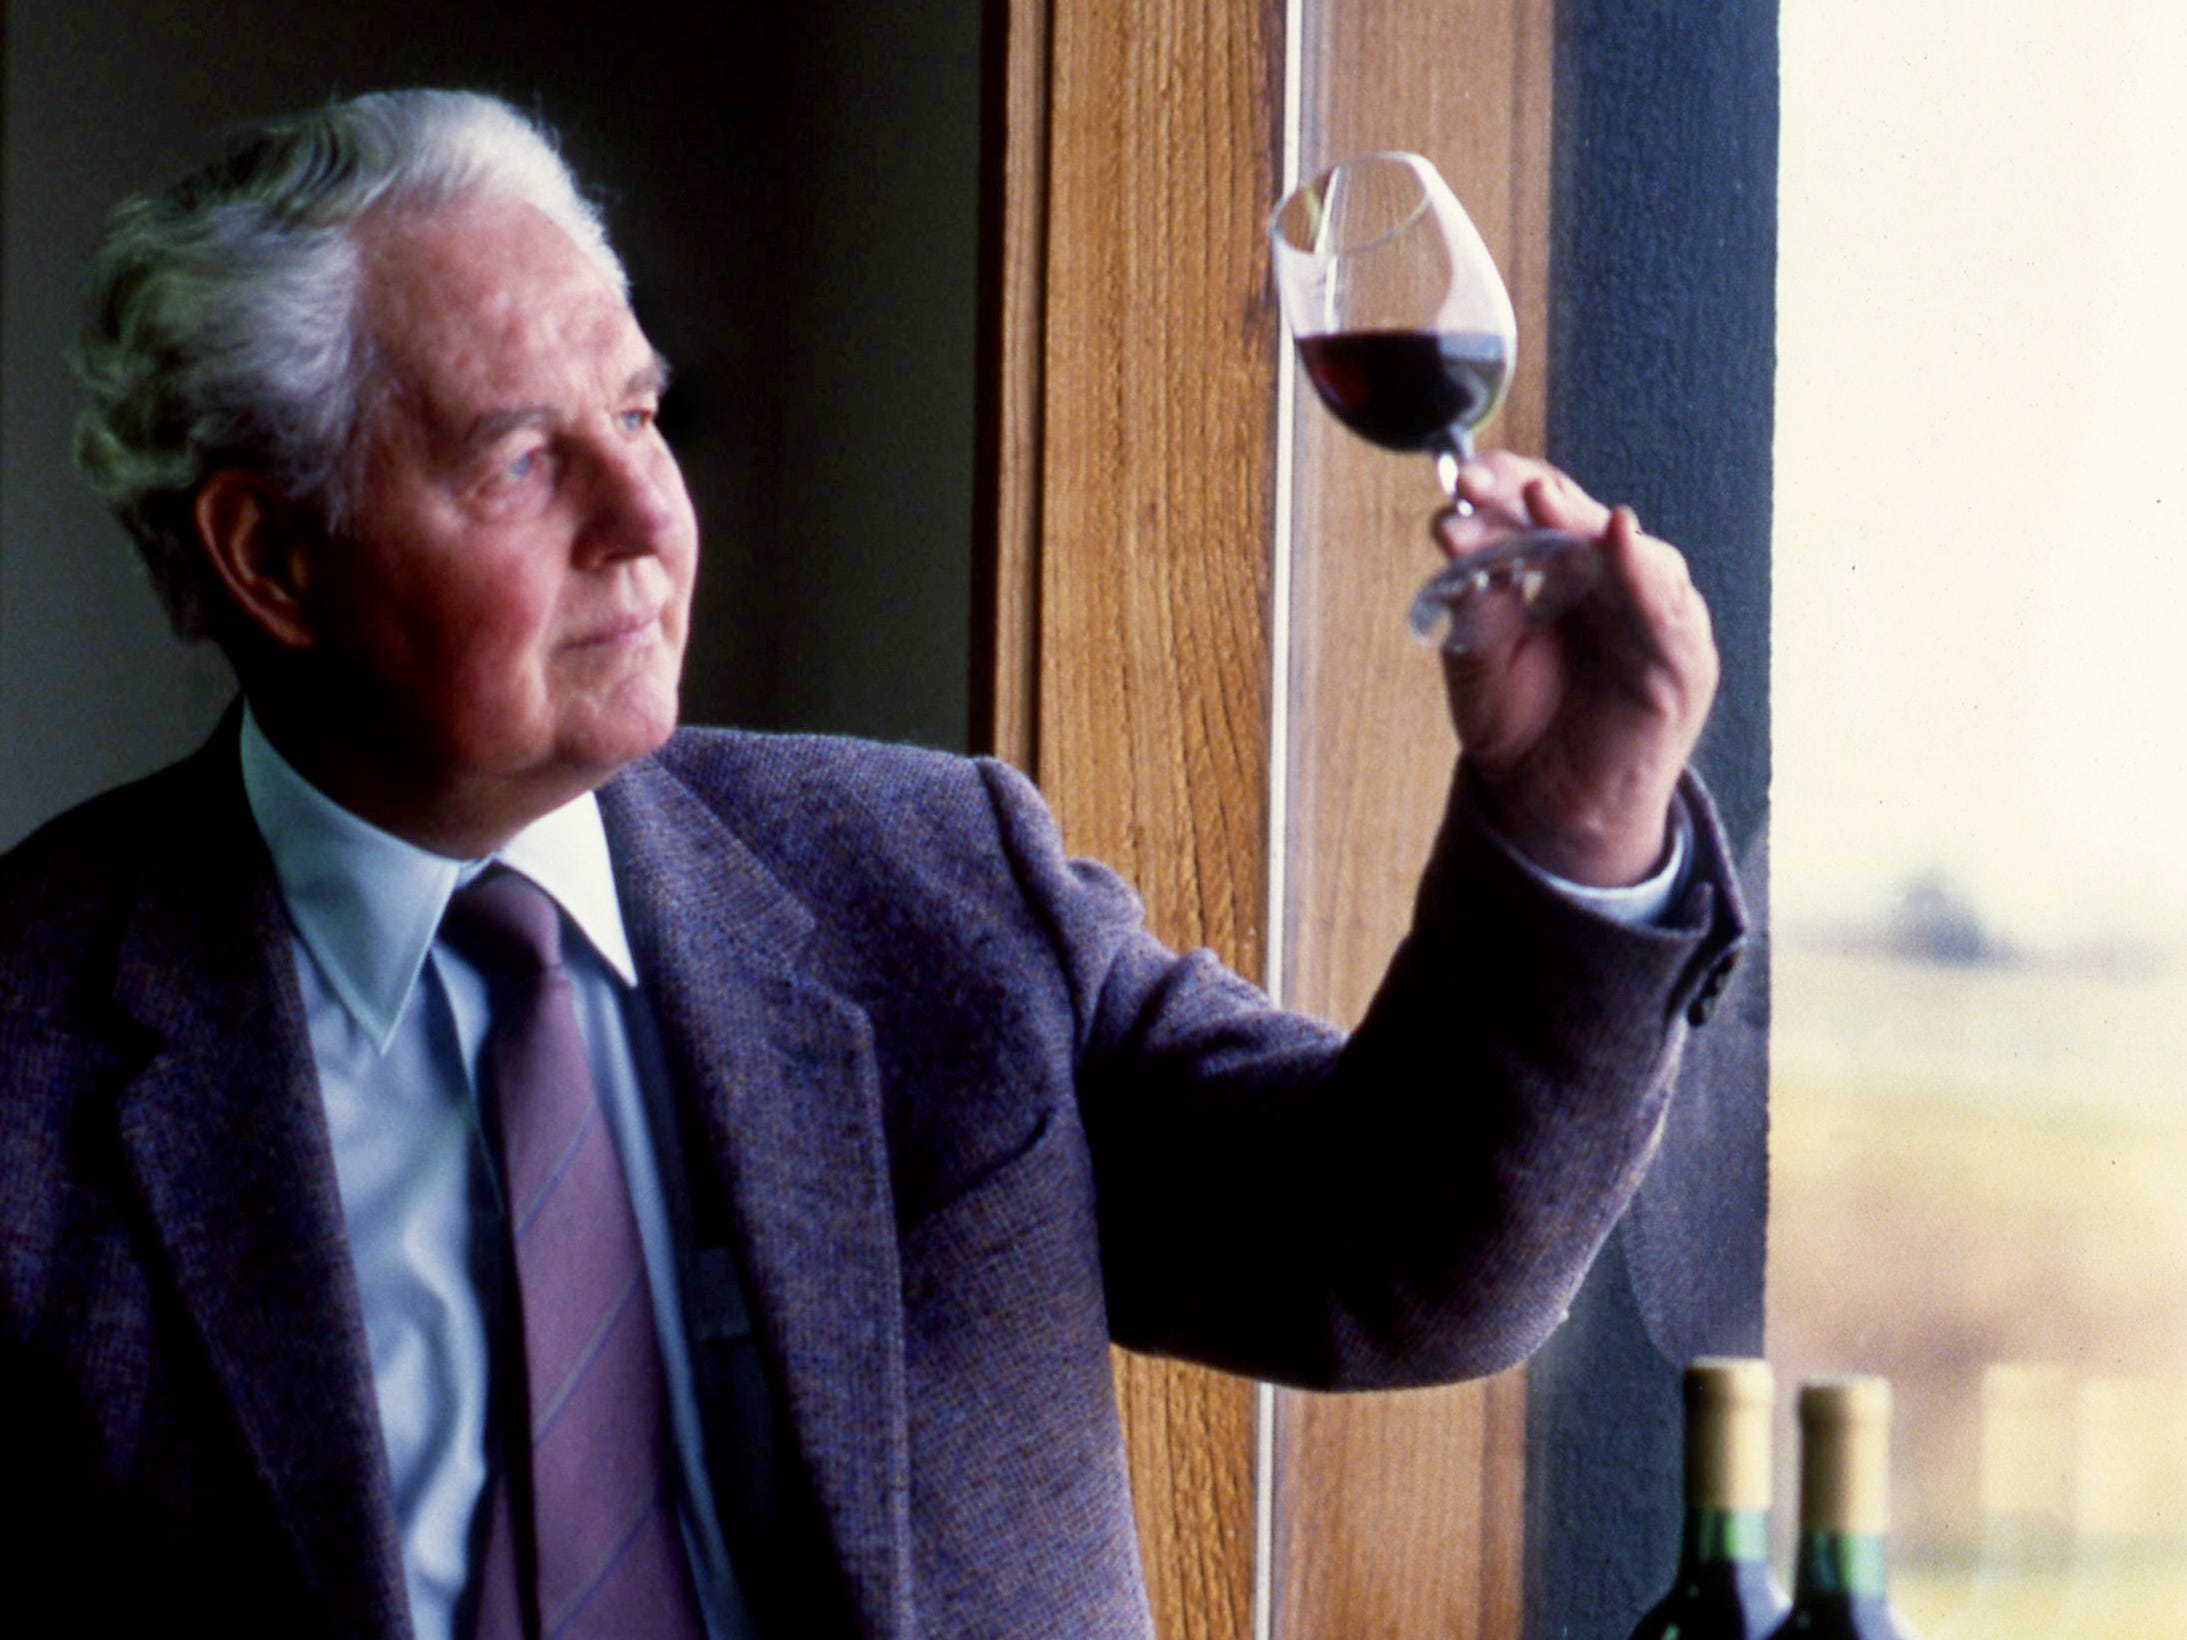 Judge William O. Beach, owner of the Beachhaven Vineyards and Winery in Clarksville, examines a glass of his cabernet sauvignon wine March 22, 1989. Beach, who served as both country judge and criminal judge of Montgomery County before his retirement in 1982, was a charter member of the Tennessee Viticultural and Oenological Society in 1973.